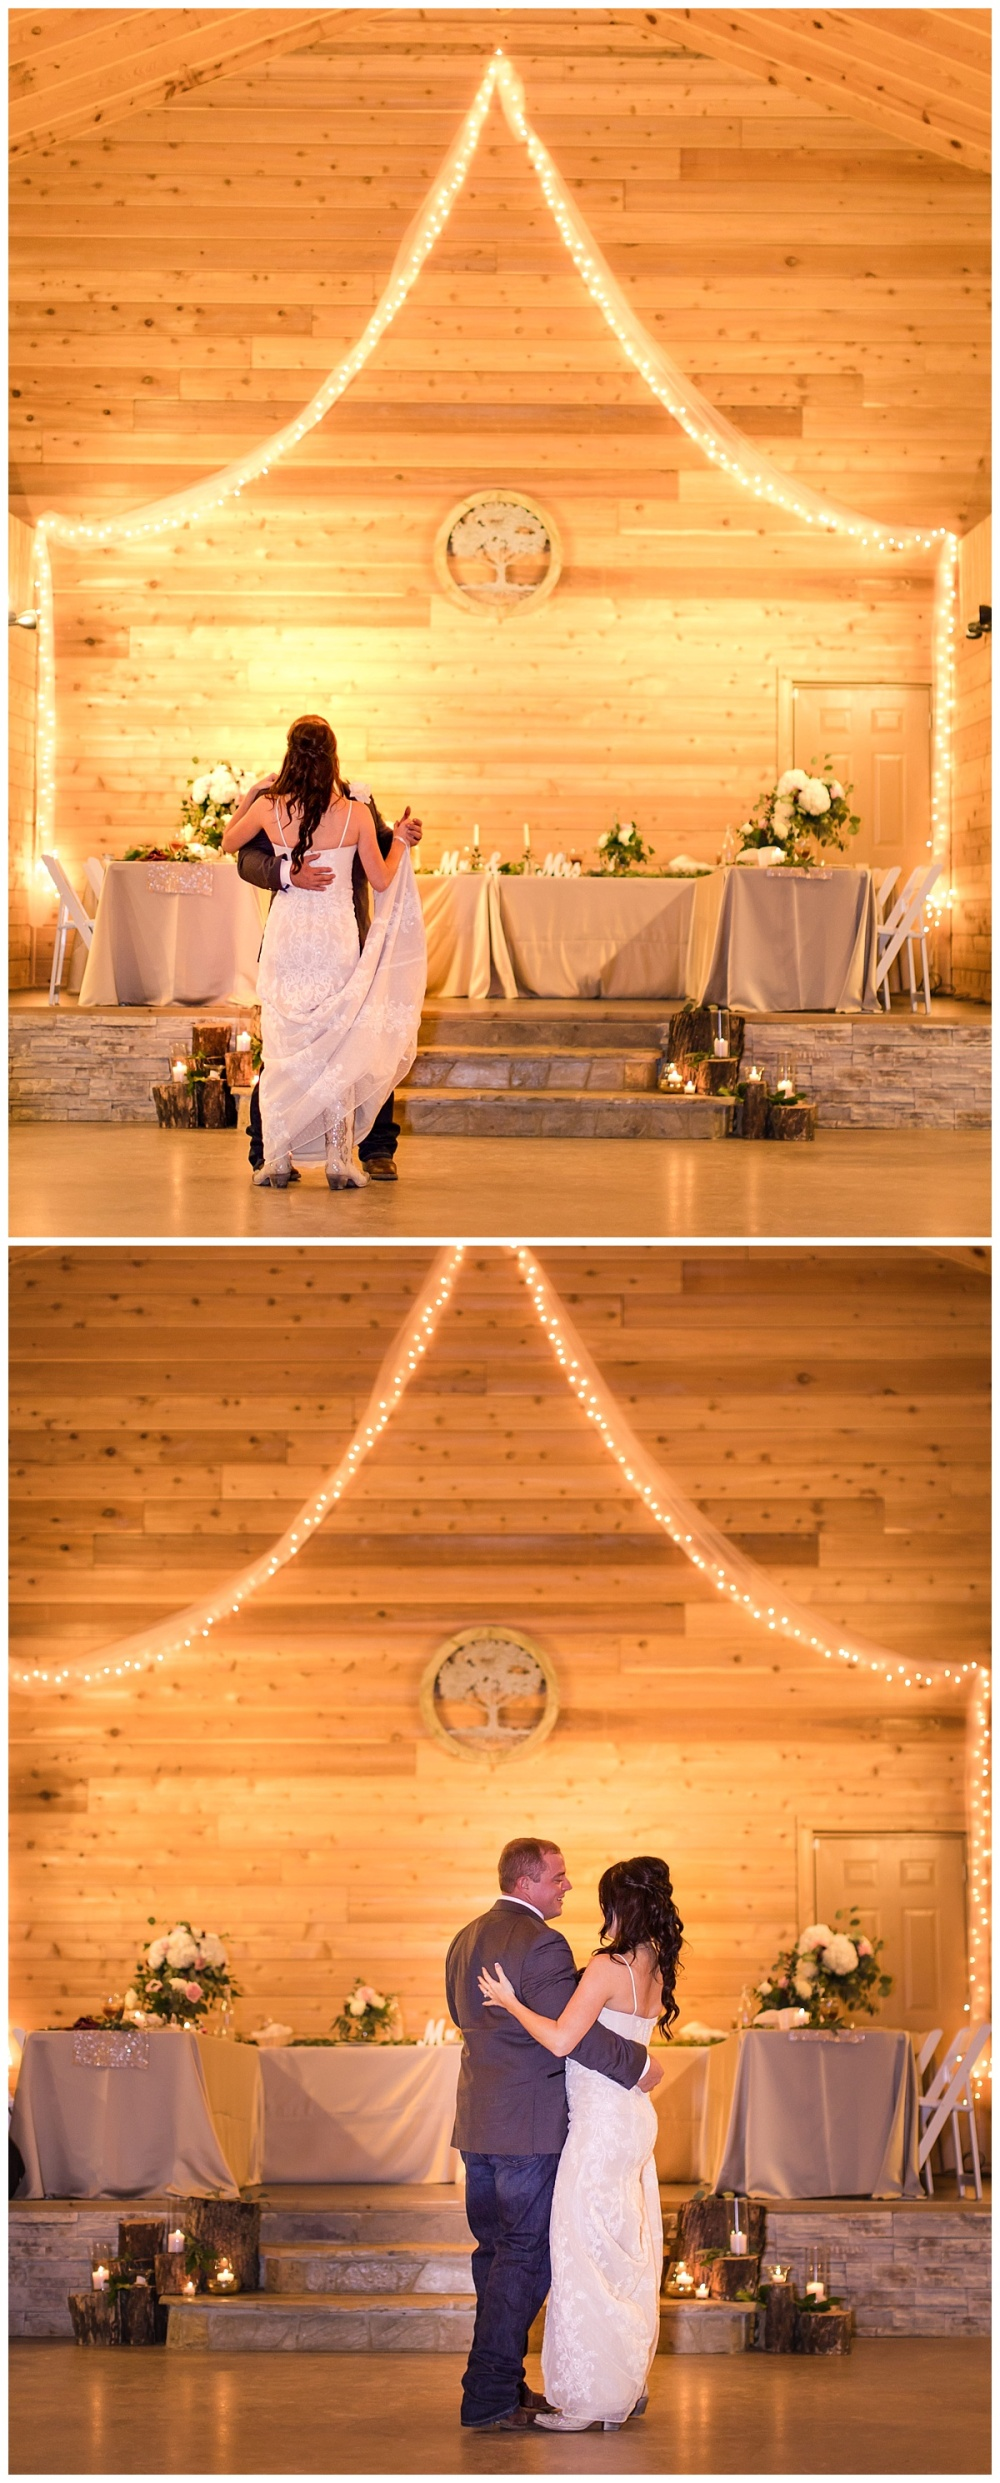 Carly-Barton-Photography-Geronimo-Oaks-Wedding-Venue-Texas-Hill-Country-Ronnie-Sarah_0117.jpg